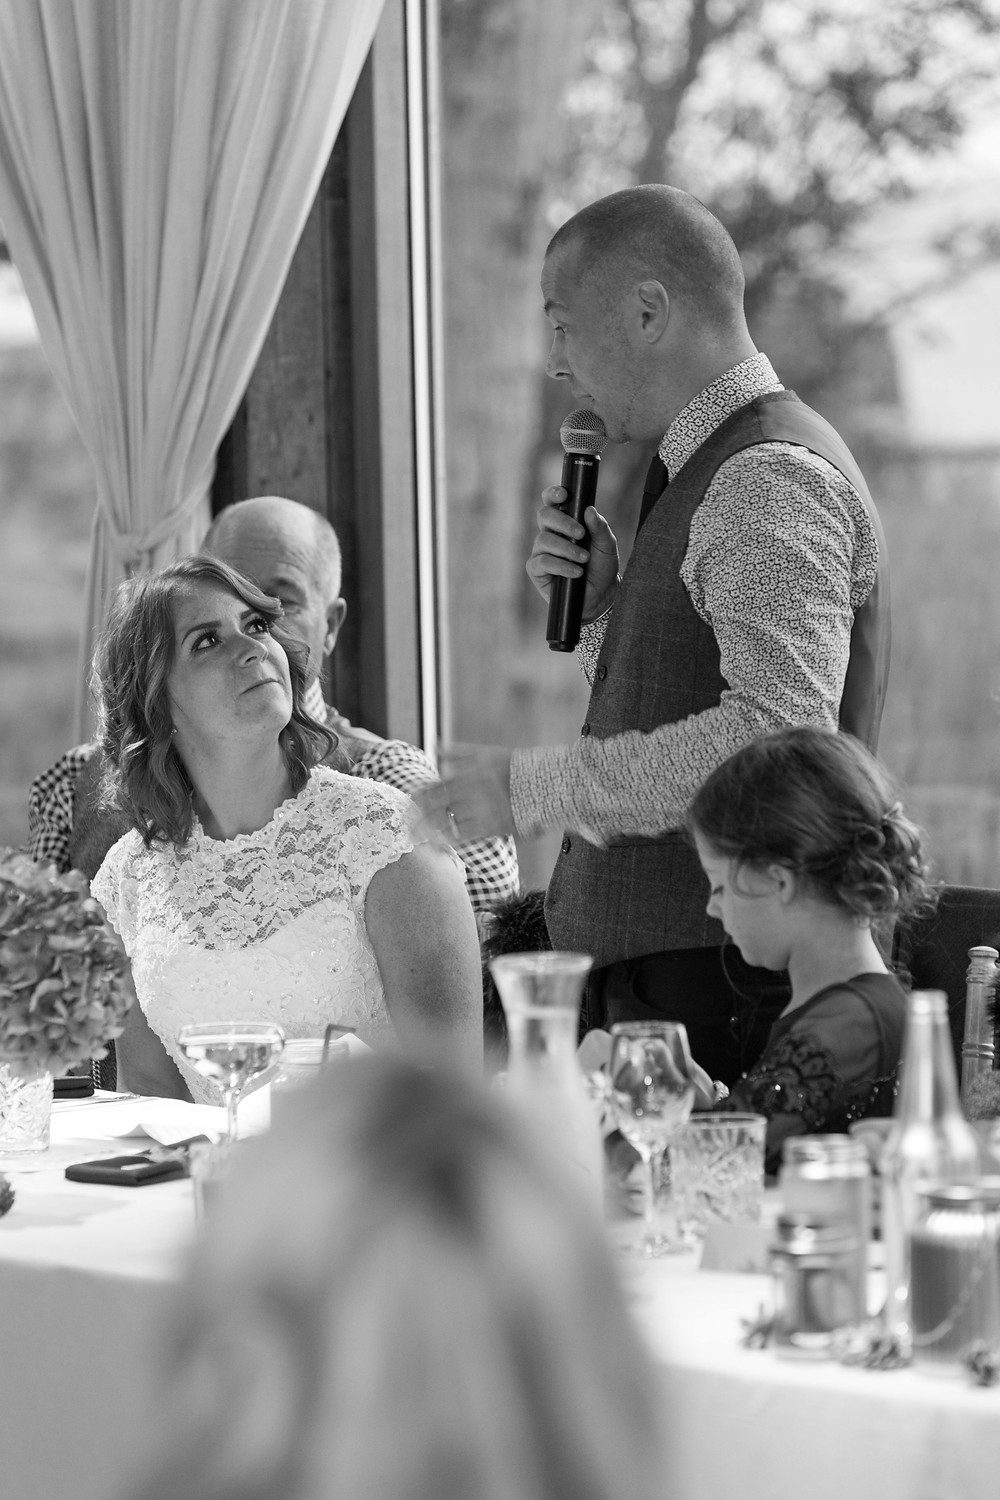 The Groom during his speech